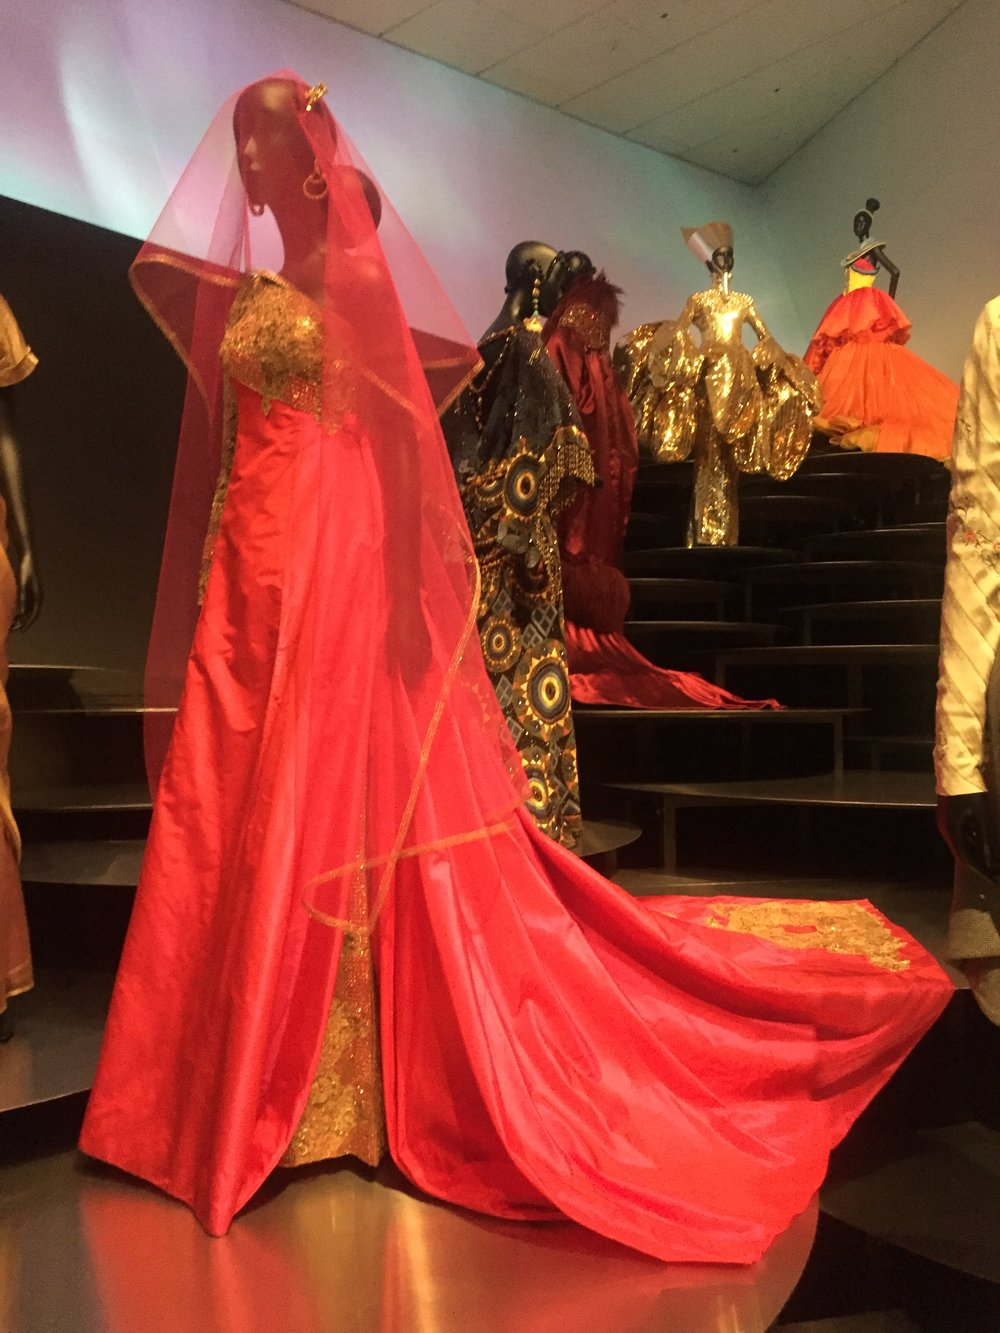 Ellora , a coral taffeta dress embroidered with gold lace by artistic designer Gianfranco Ferré, is featured among global-inspired couture dresses standing on massive steps of shaped like petals in the Martin and McCormick Gallery.